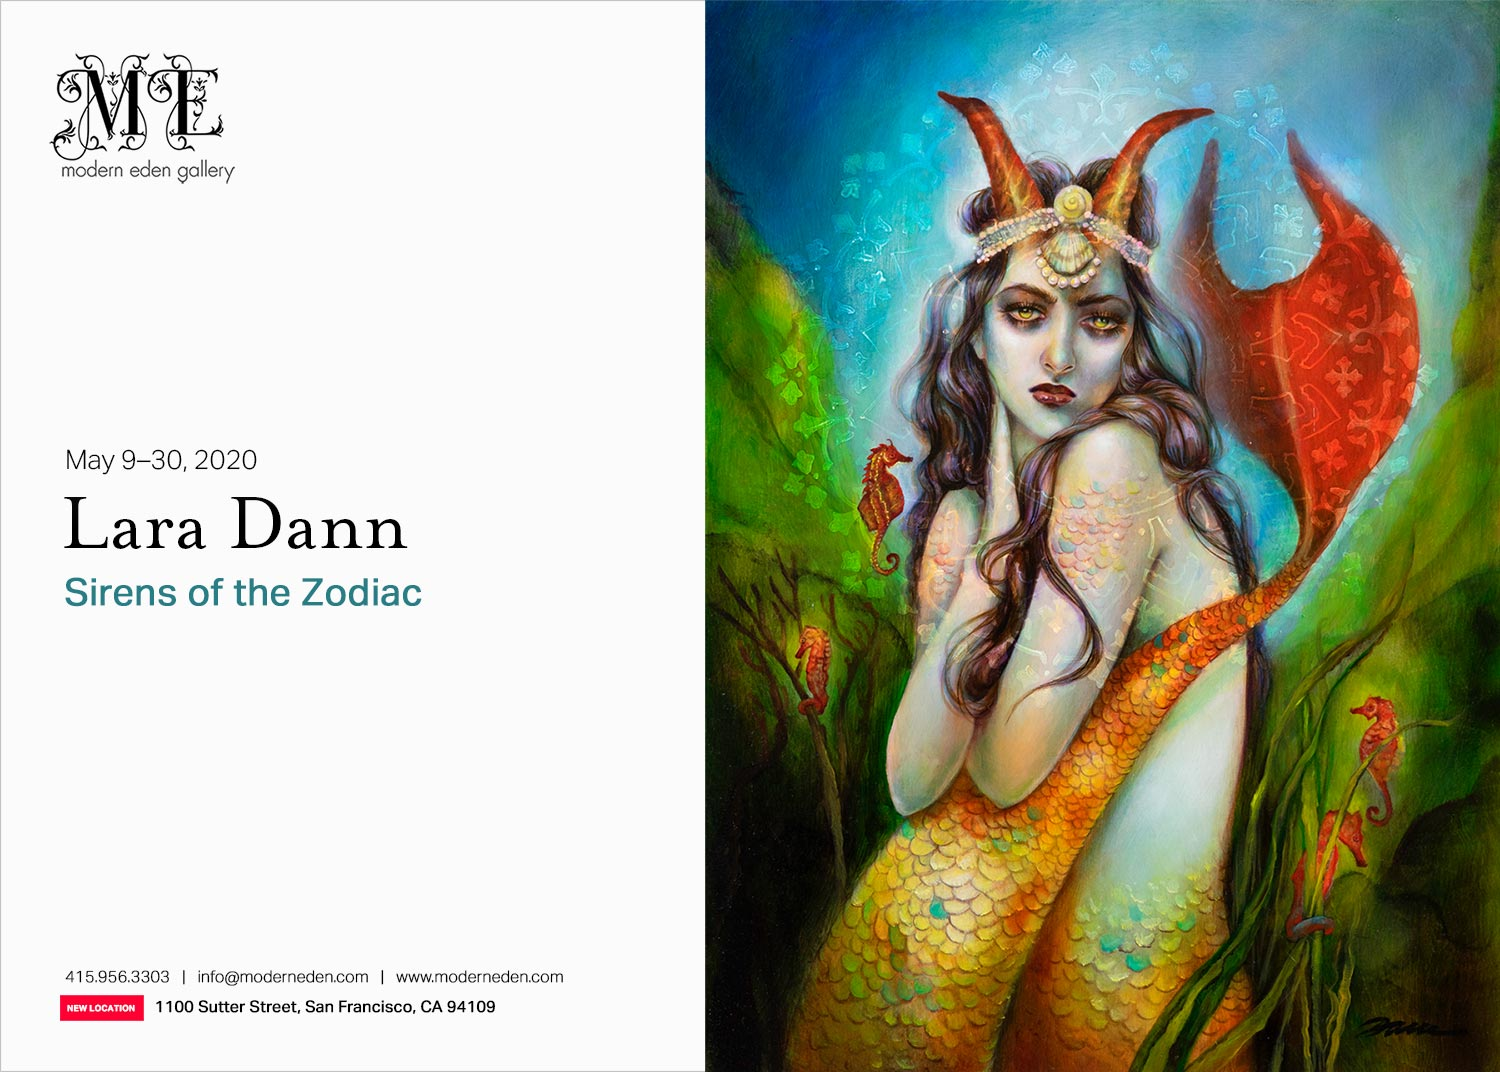 Sirens of the Zodiac Lara Dann solo exhibition